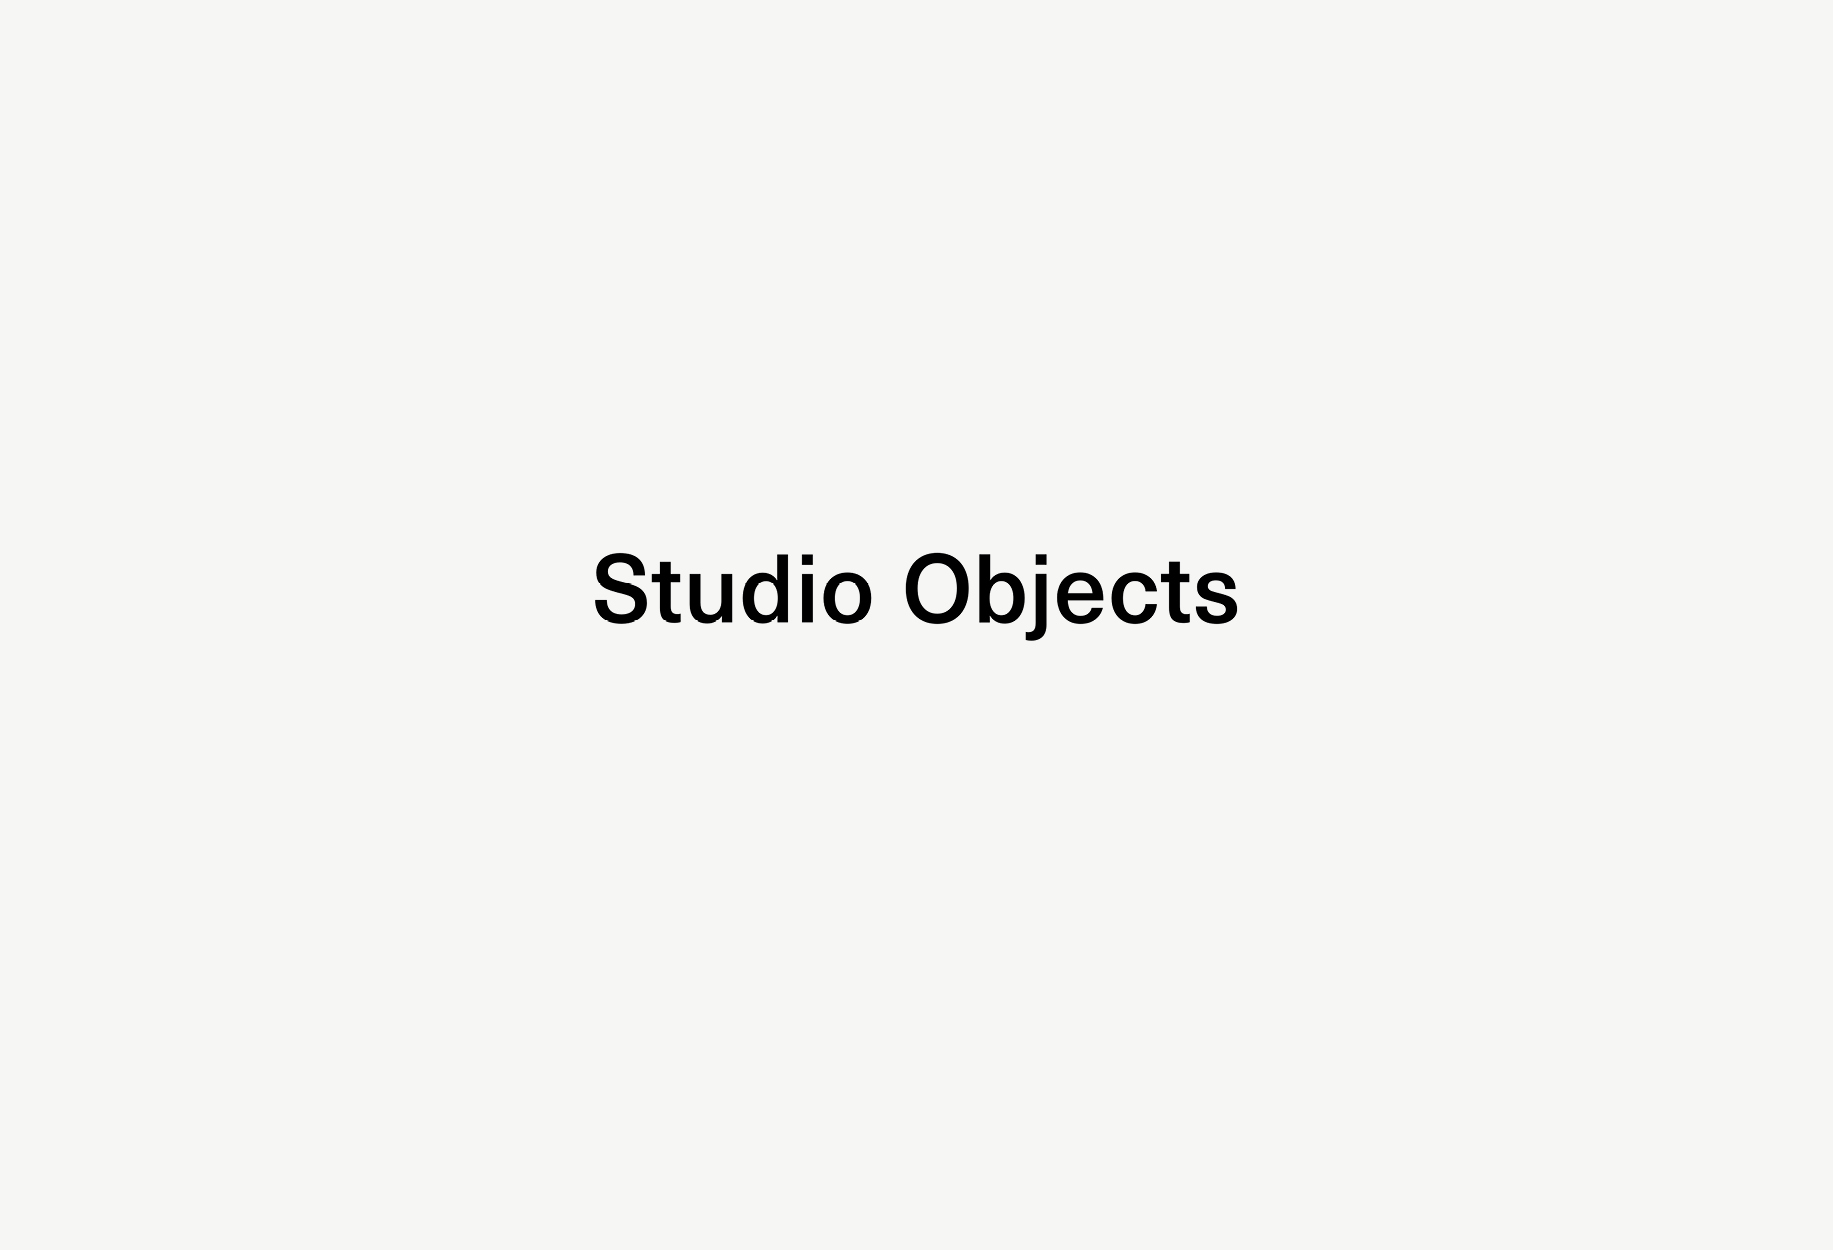 studio-objects-logo-grey.jpg